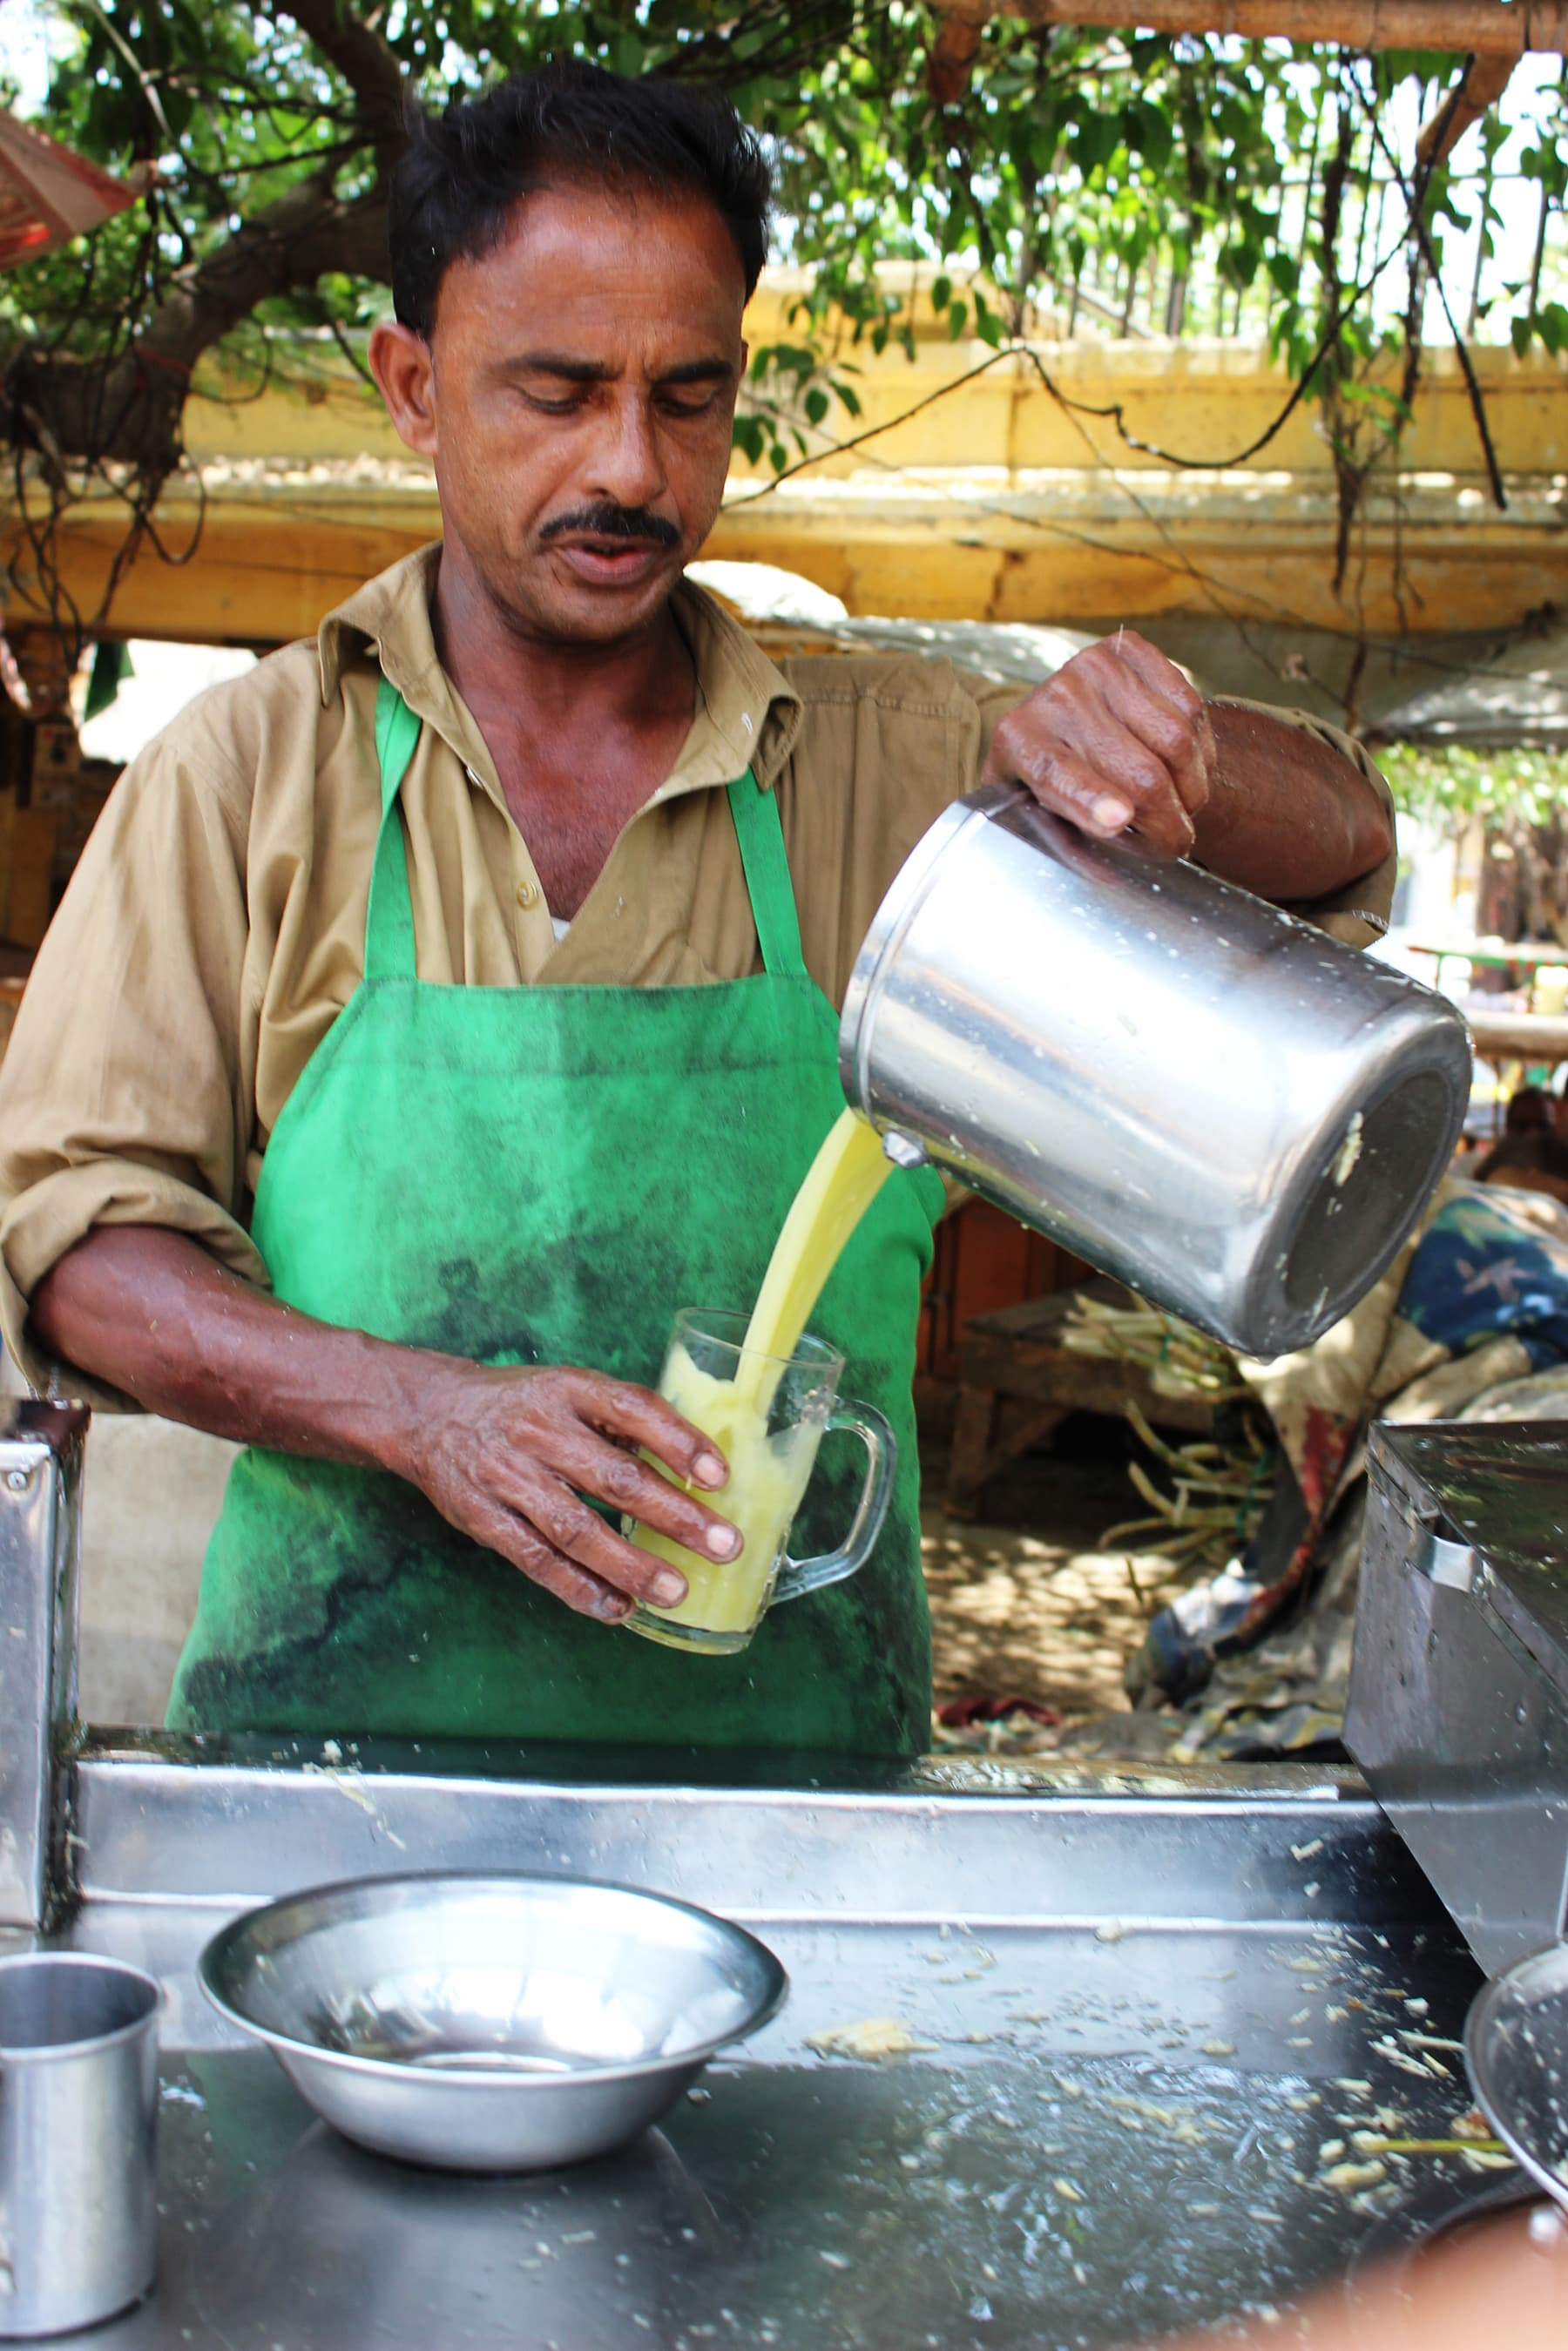 Sugarcane juice being poured out.